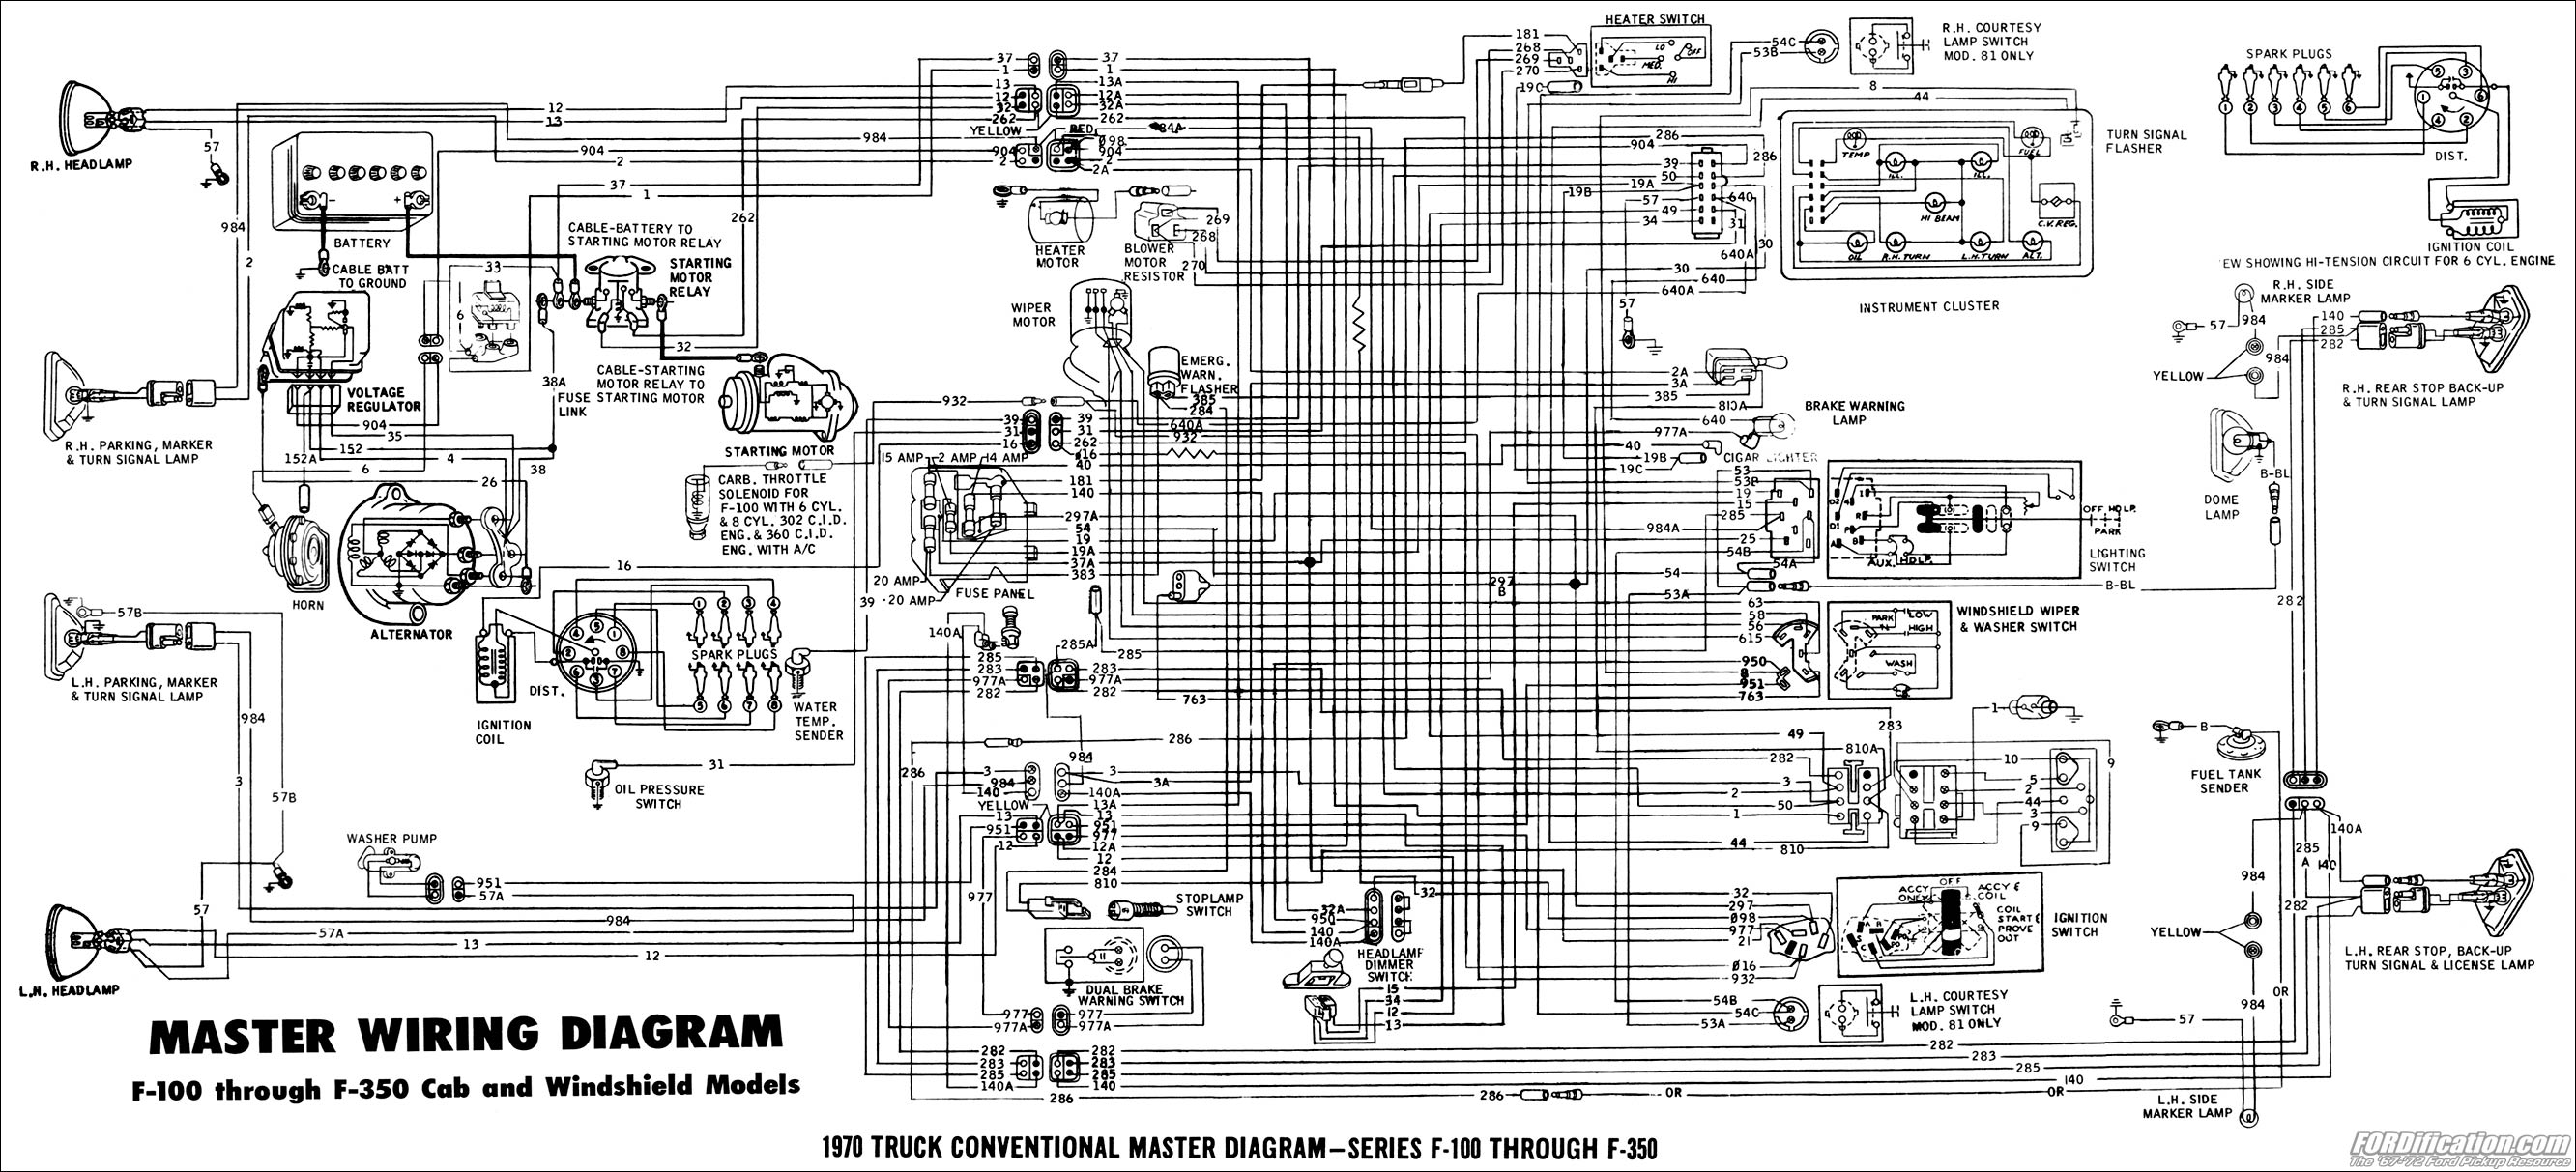 Valet Remote Start Wiring Diagram Schematic Diagrams Avital 4x03